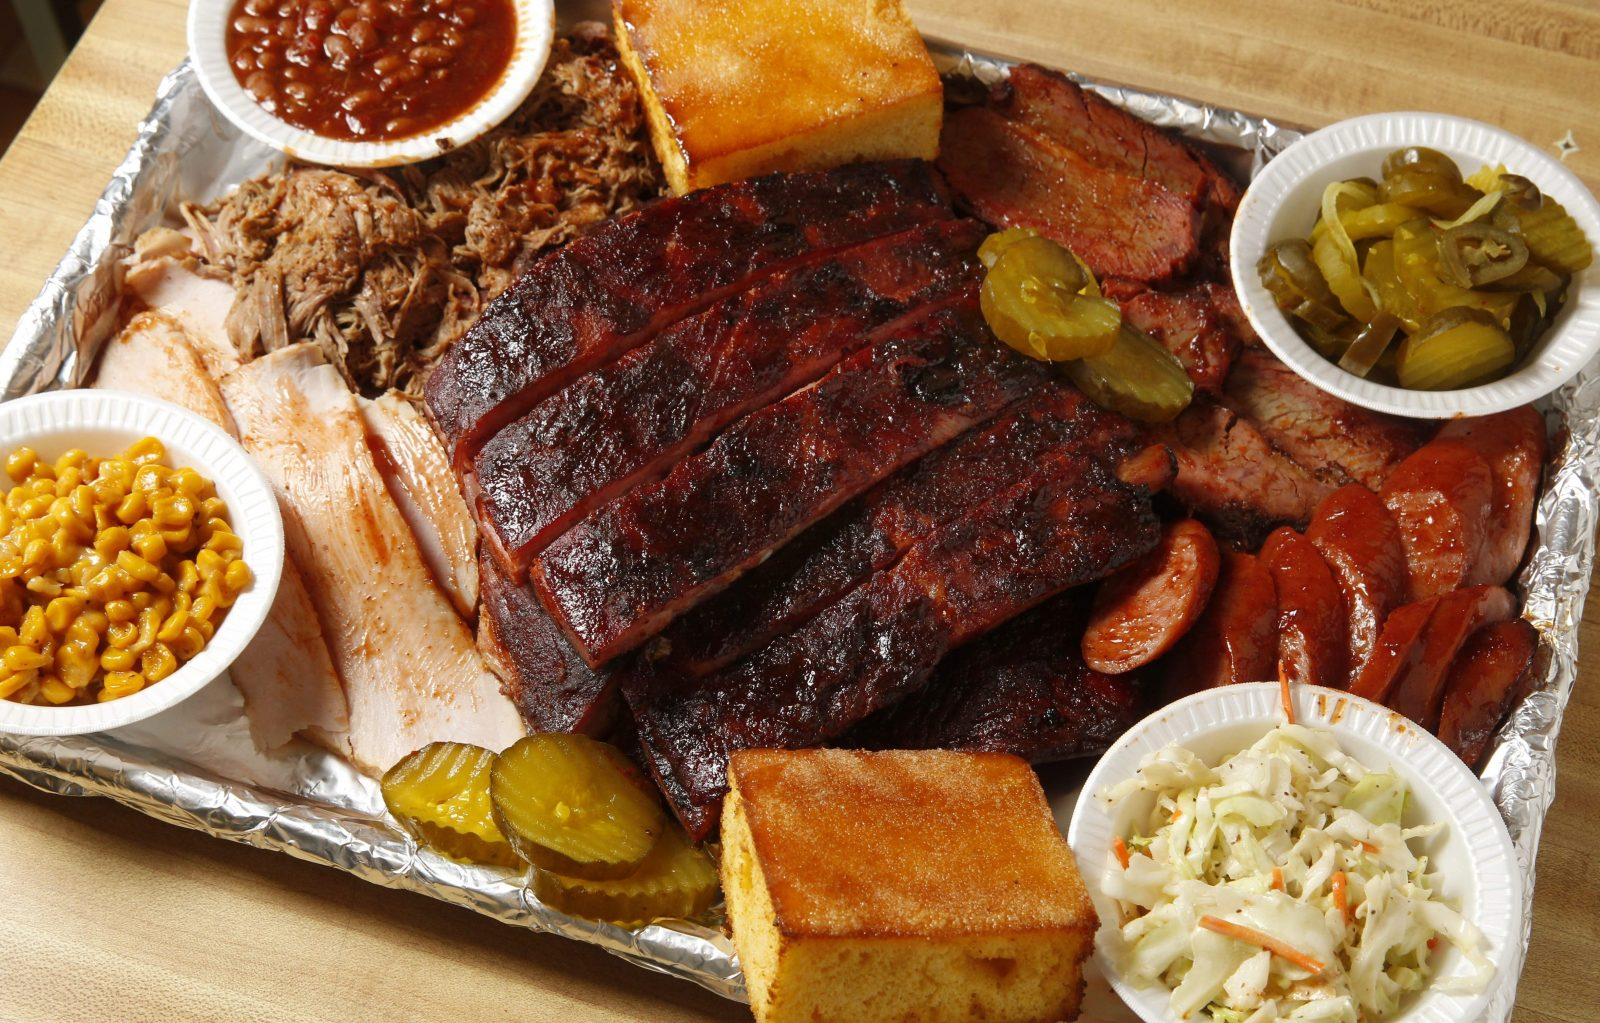 Included in this platter is a rack of ribs and half heaps of turkey, pork, brisket and sausage. Sides are fried corn, baked beans, fire and ice pickles, creamy coleslaw and toasted cornbread.